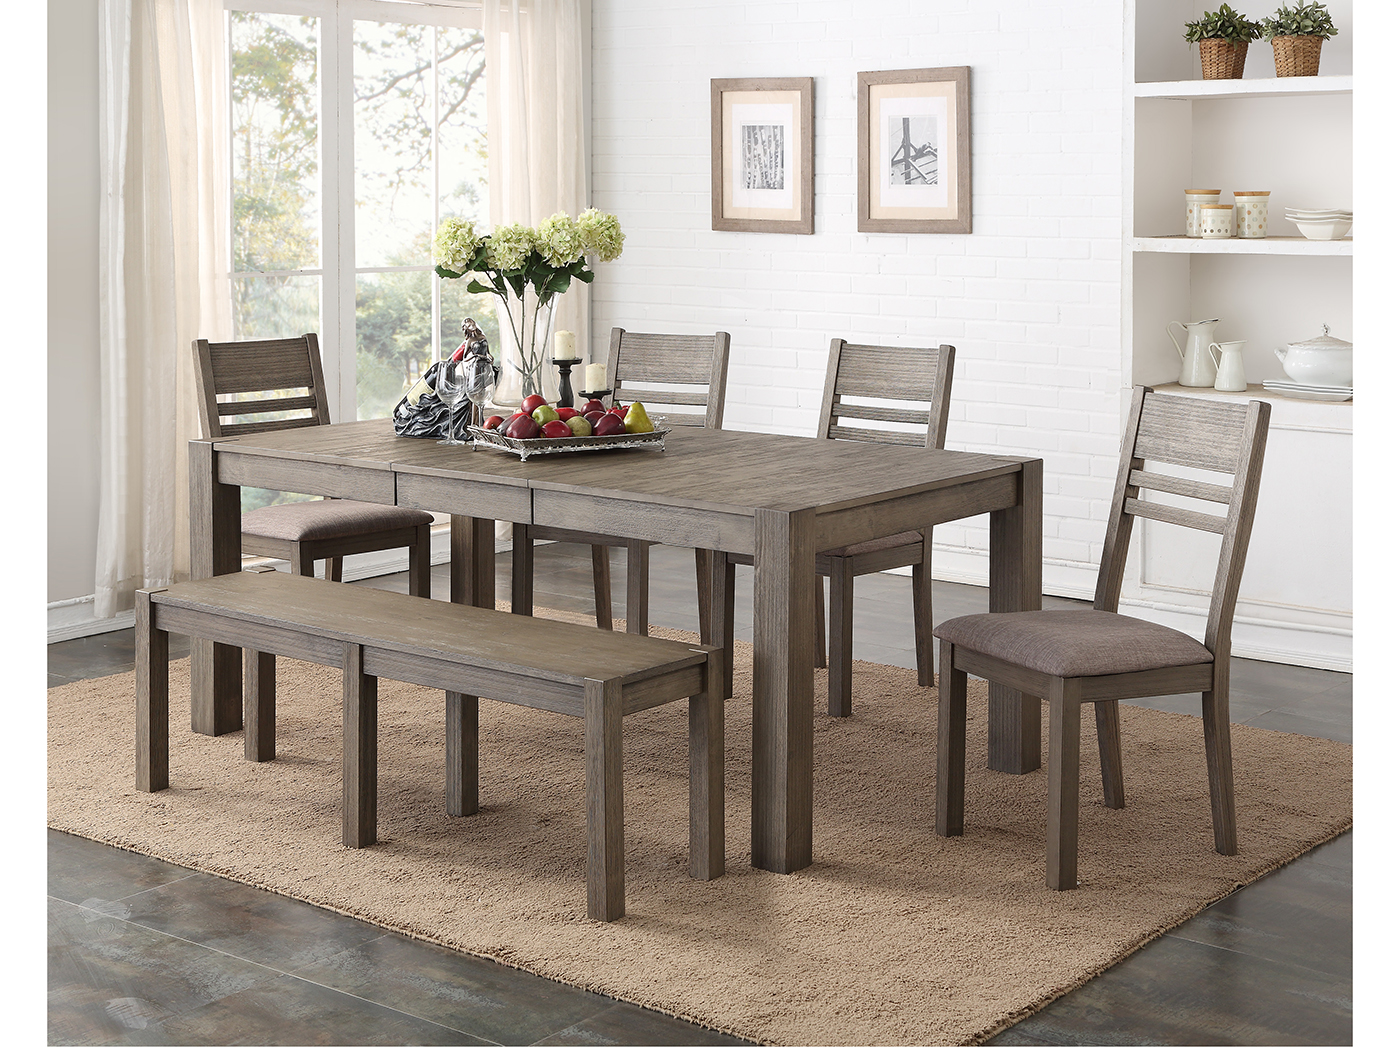 Hillcrest 6 PC Dining Set (Table + 4SC + Bench)